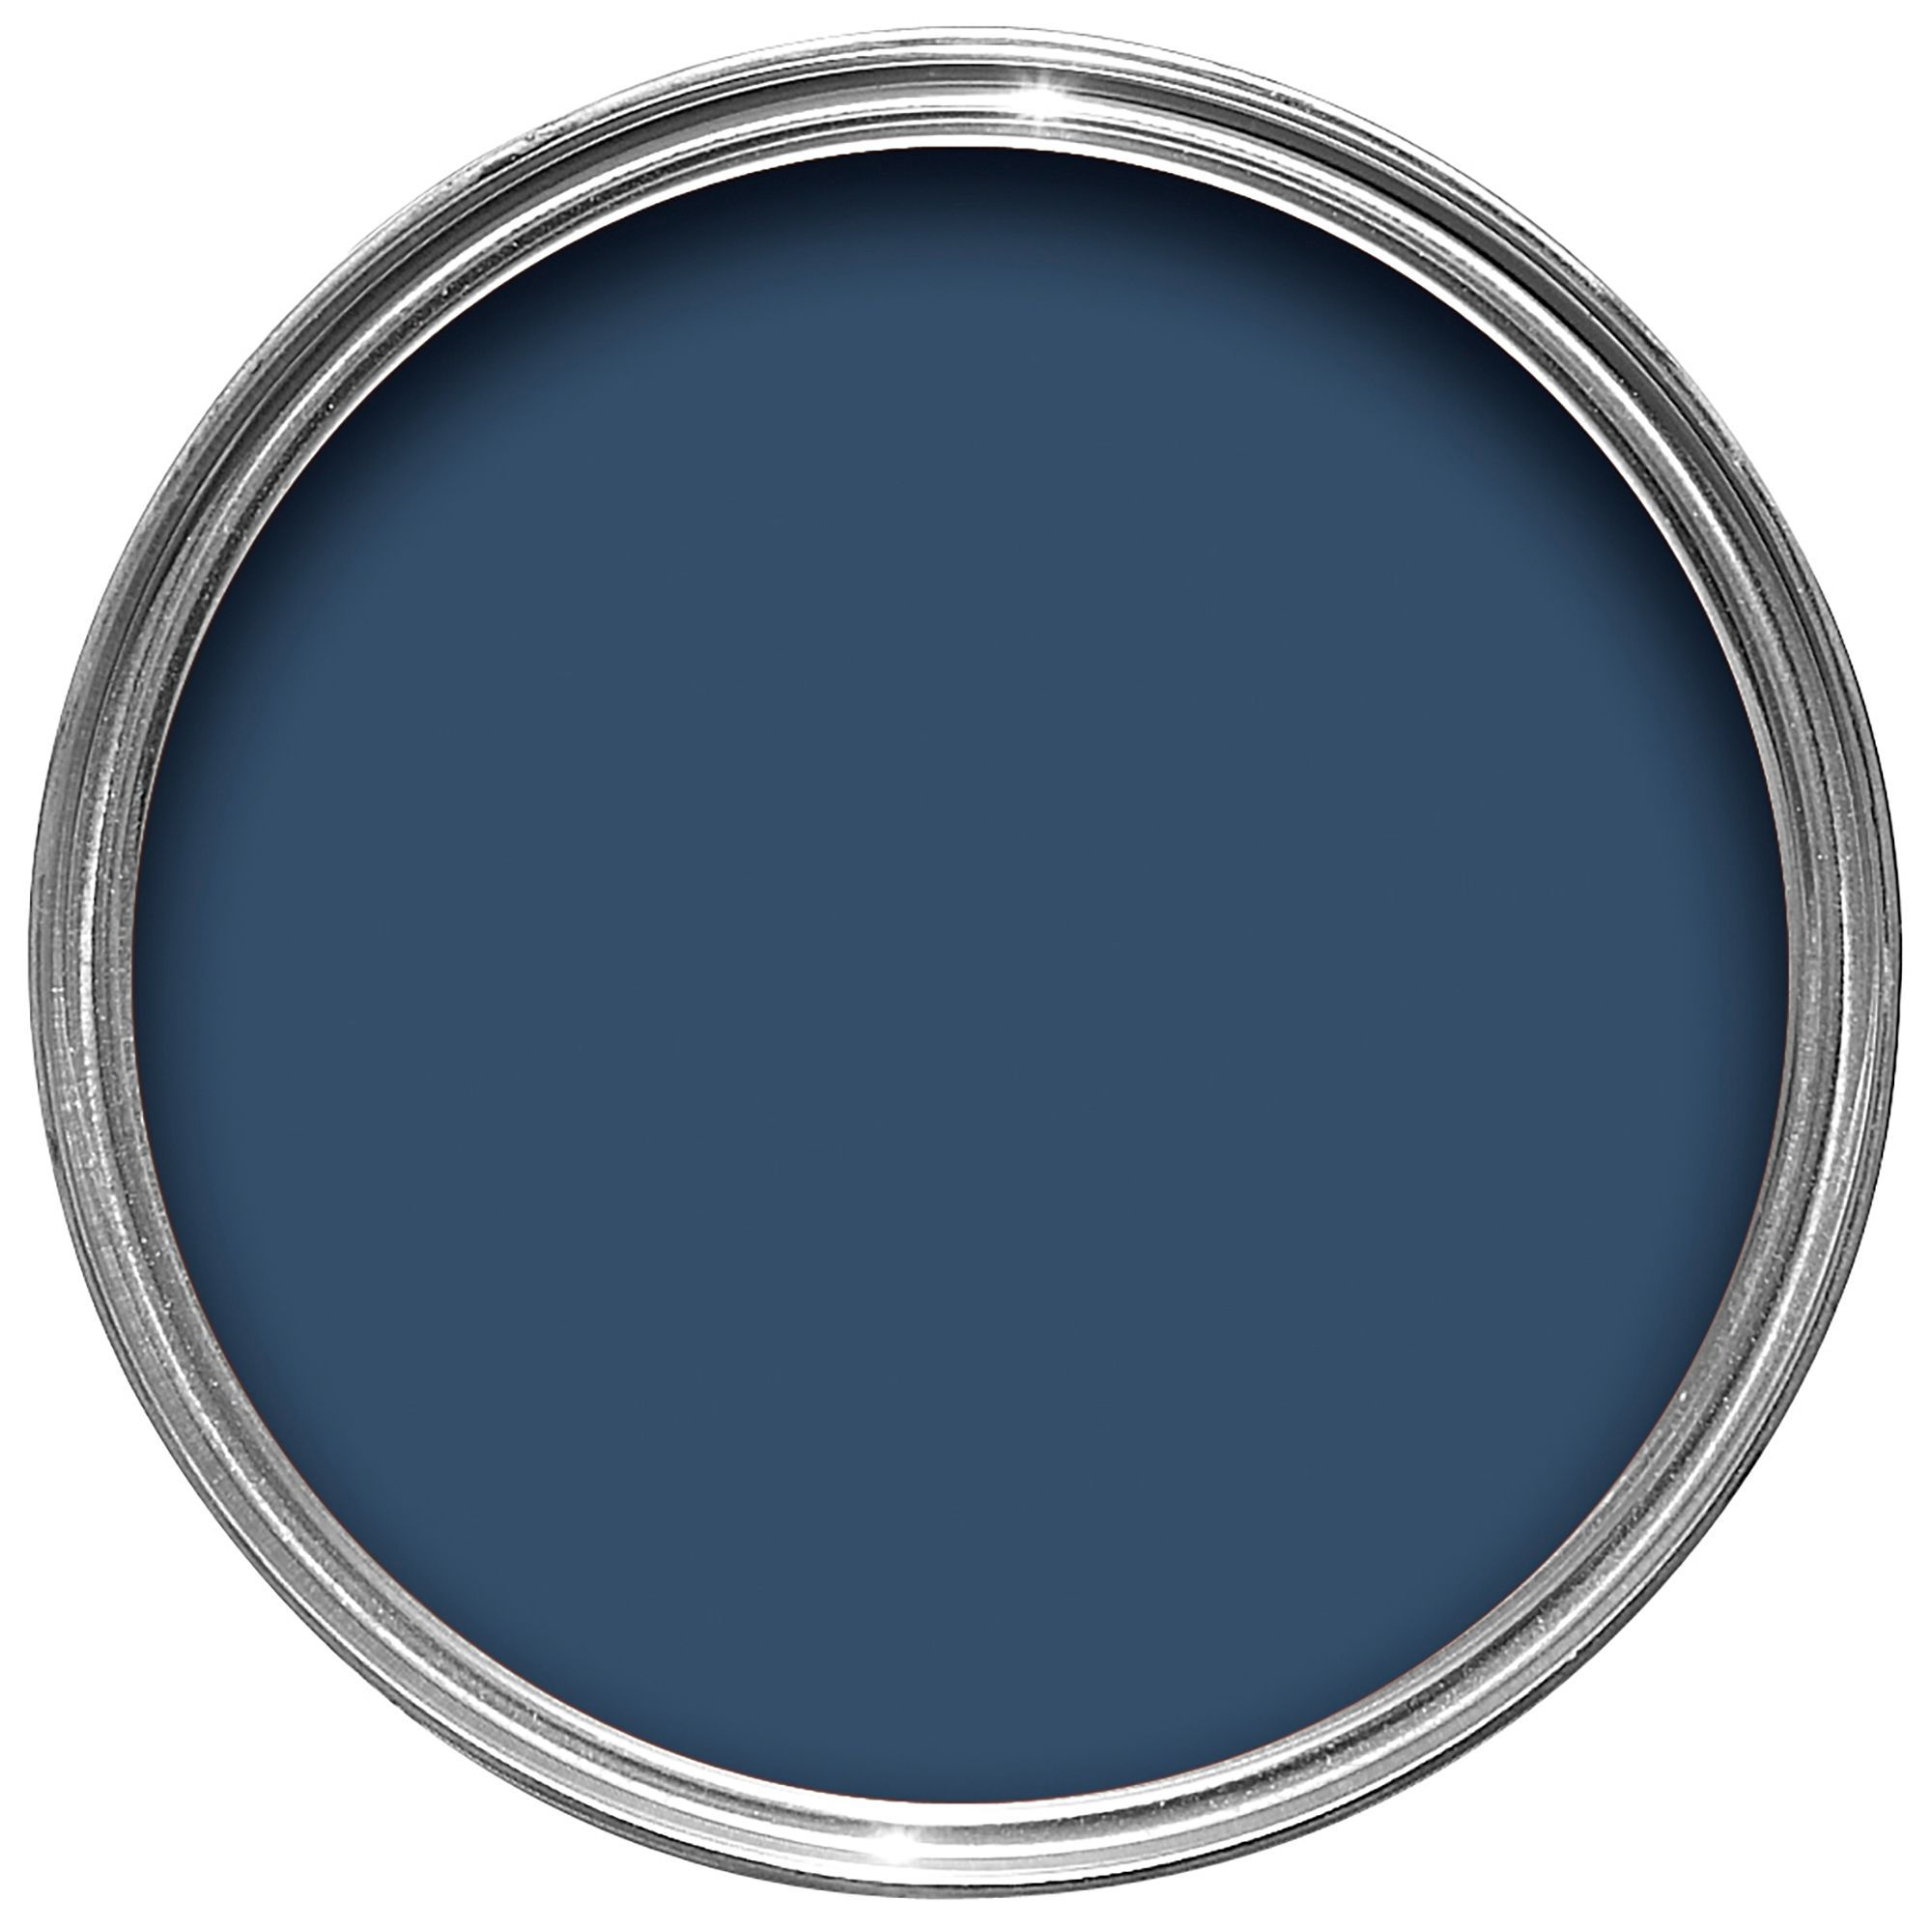 Dulux weathershield exterior glade green satin paint 750ml departments diy at b q - Dulux weathershield exterior paint minimalist ...